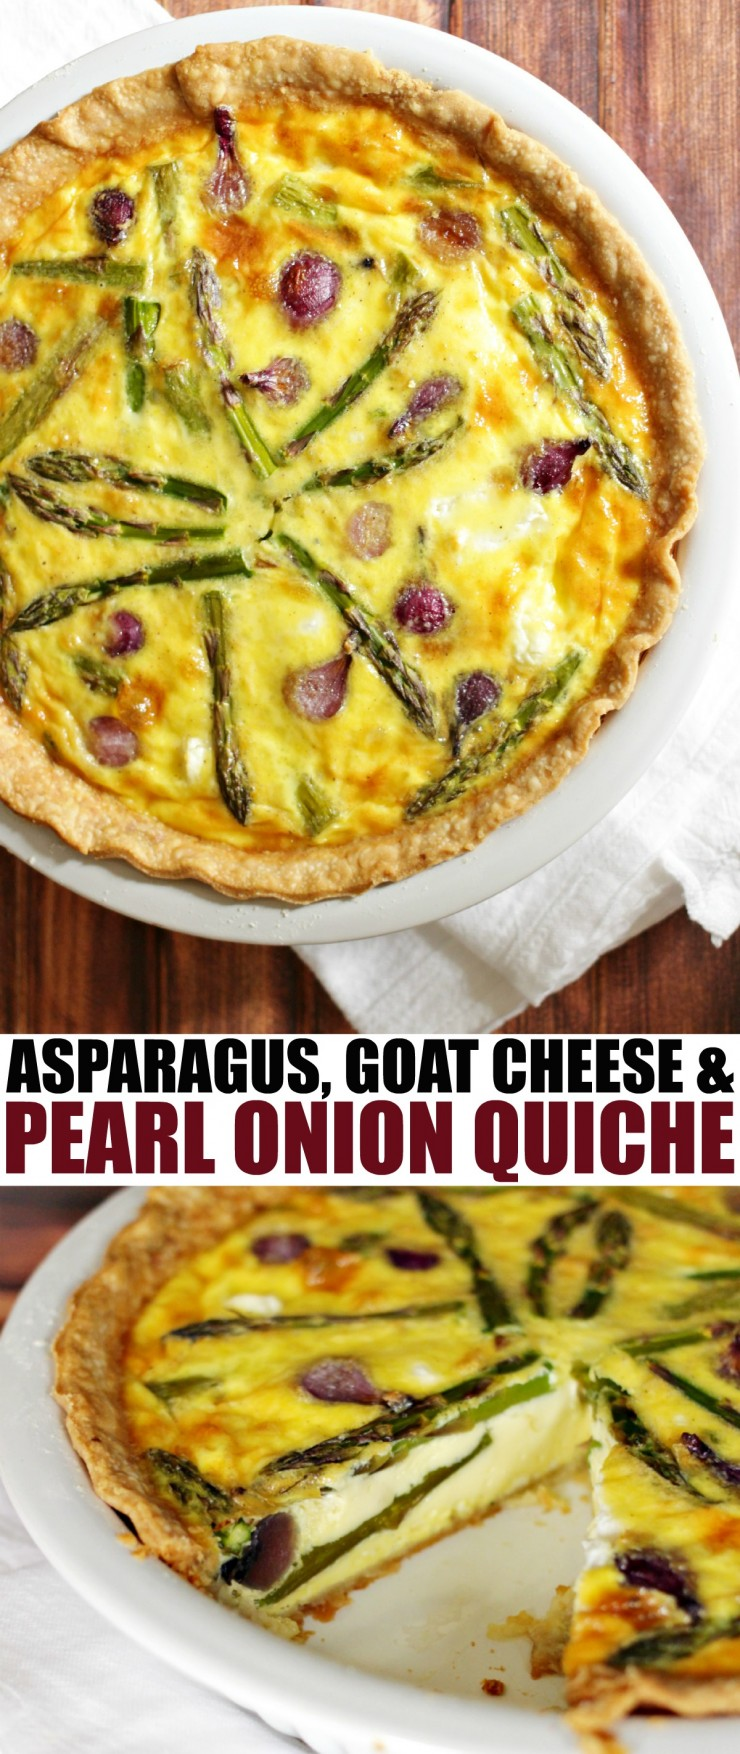 Asparagus, Goat Cheese and Pearl Onion Quiche for a fresh, Spring inspired family dinner featuring plenty of delicious eggs!